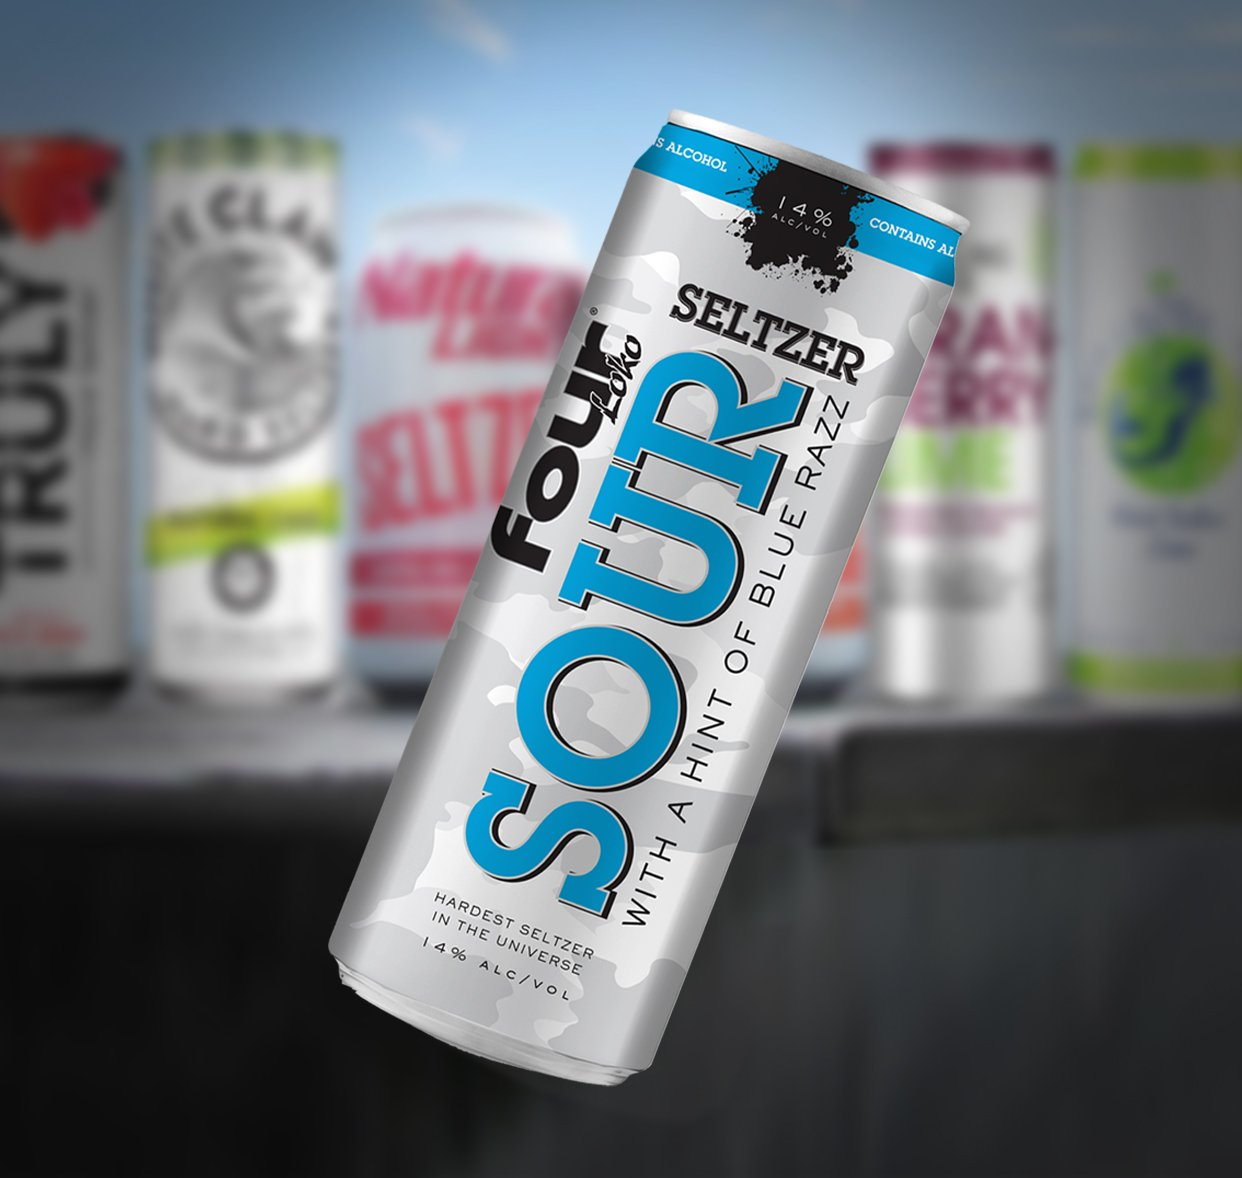 Four Loko On Twitter Hard Seltzers Ran So We Could Fly